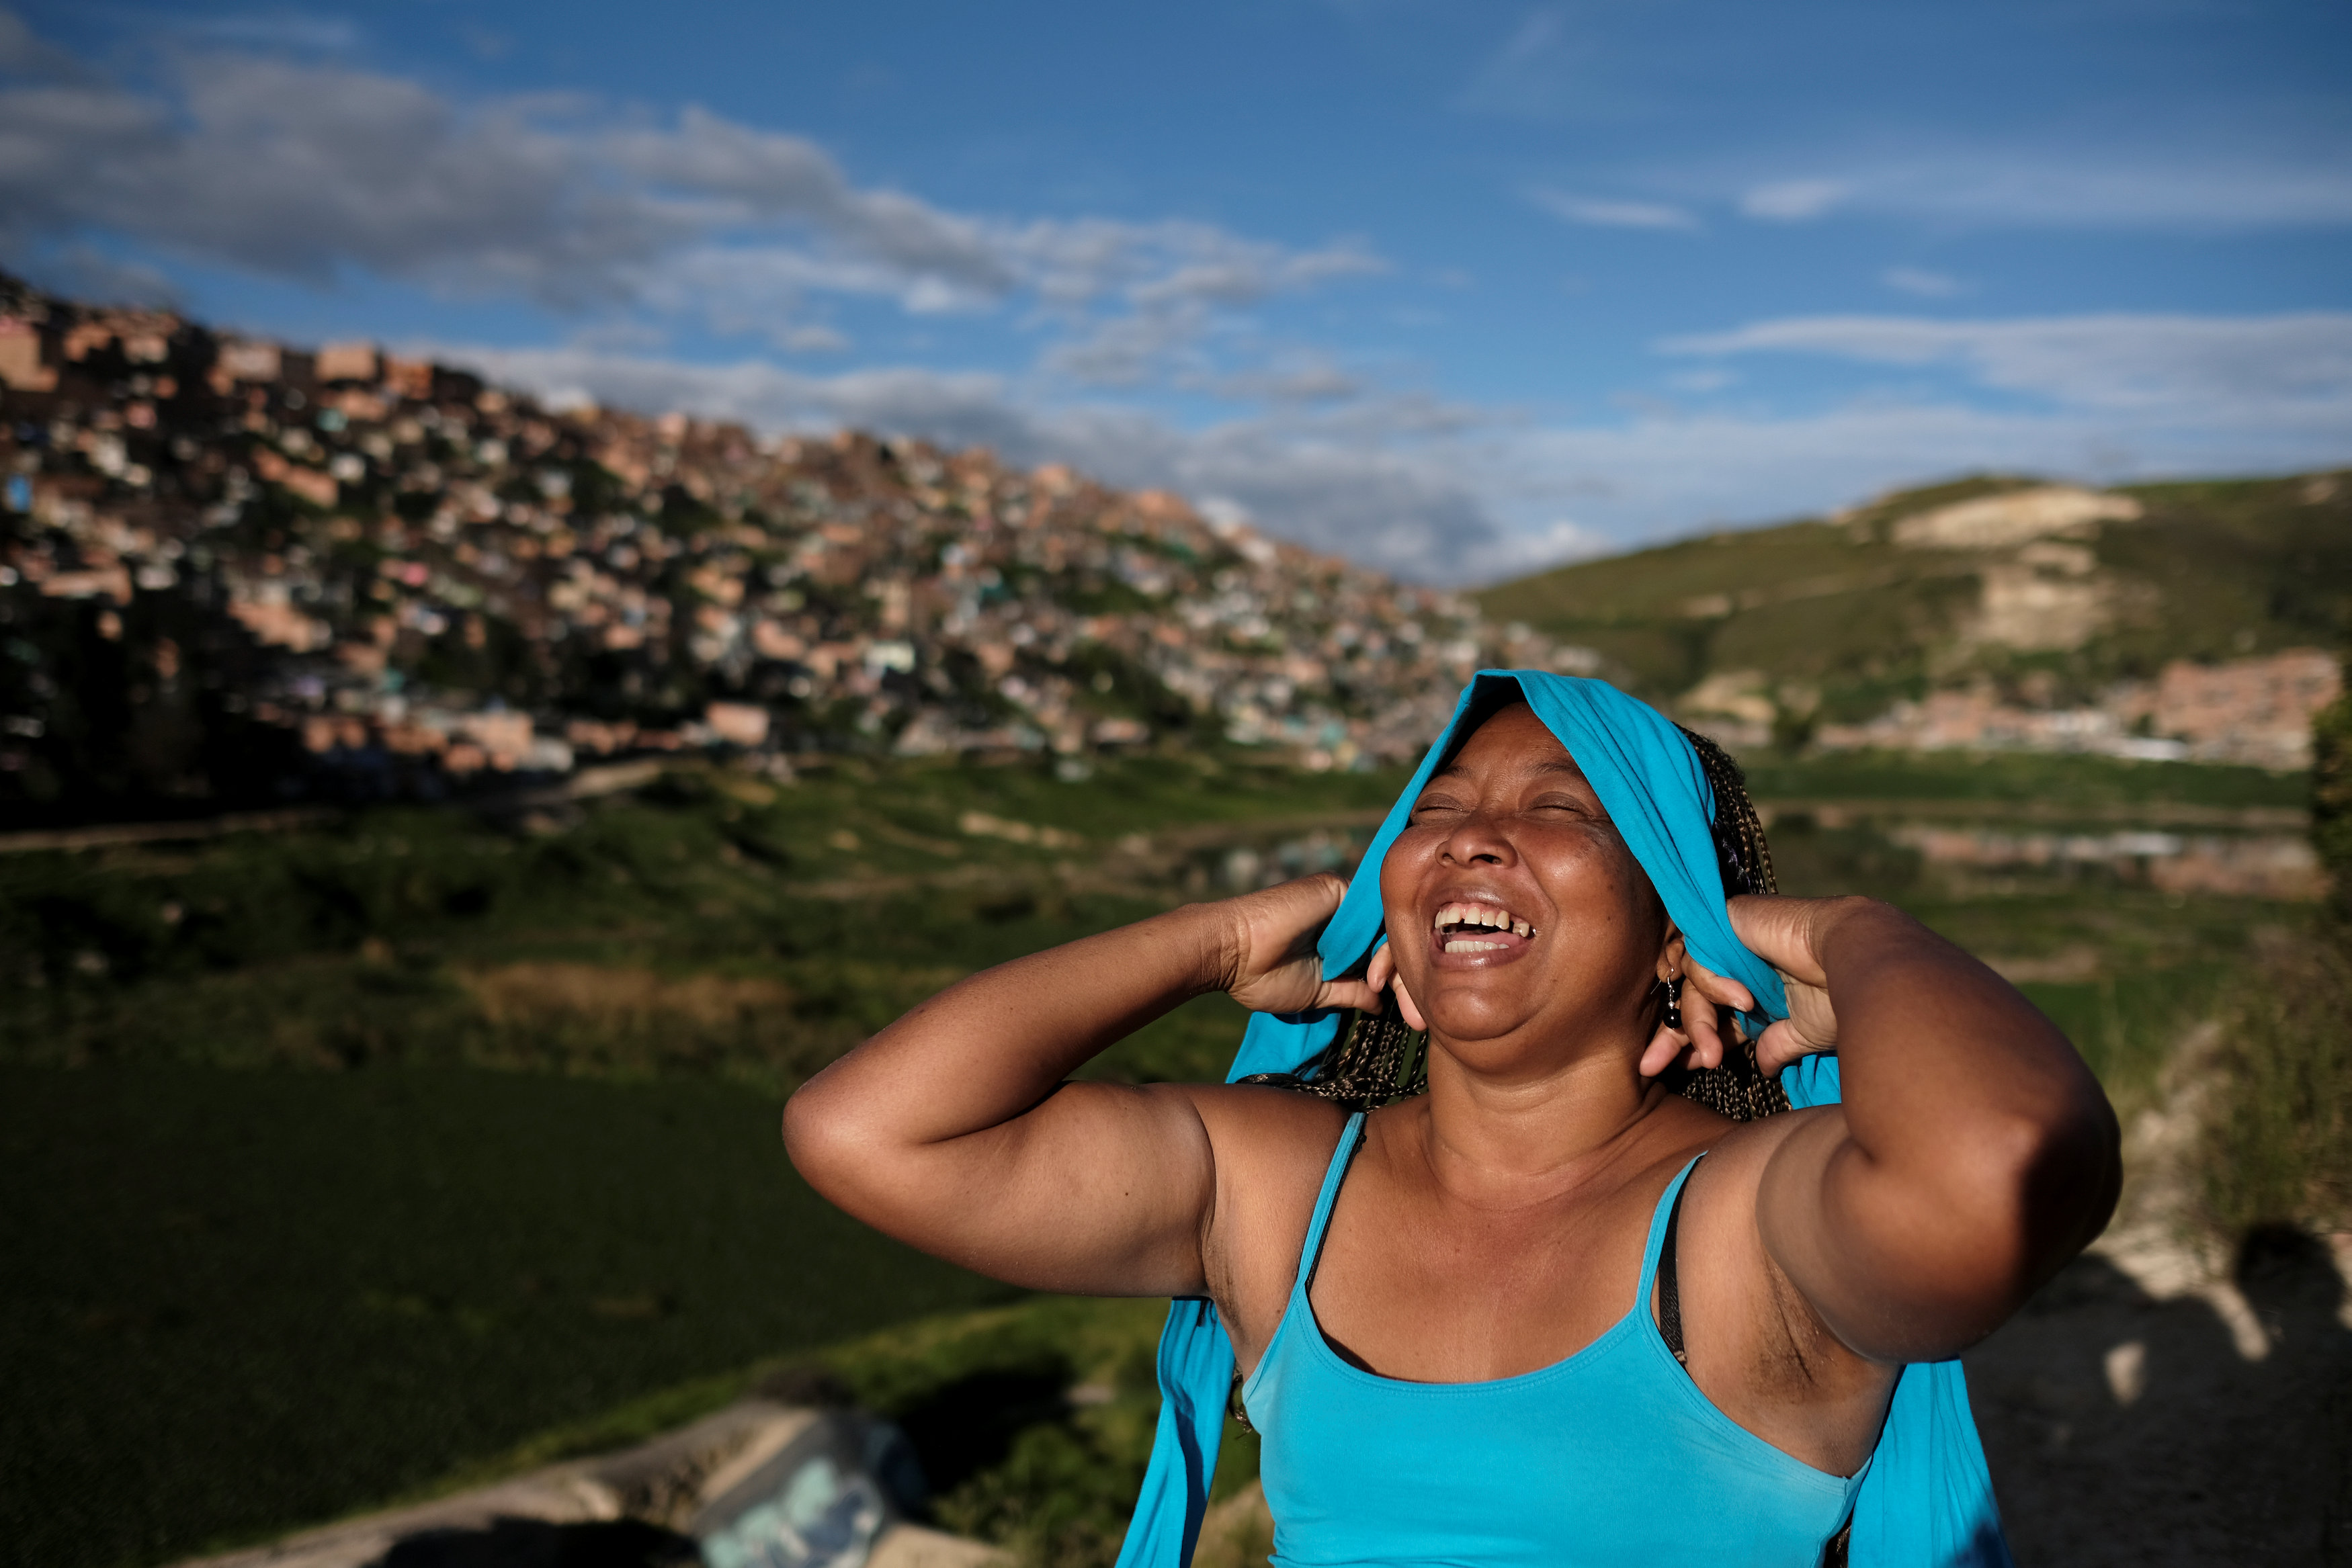 Lina, who said she was raped by dozens of right-wing paramilitary fighters in the Montes de Maria region during the five-decade civil war, laughs as she puts on a hairband in Soacha, on the outskirts of Bogota, Colombia, June 12, 2018. REUTERS/Nacho Doce